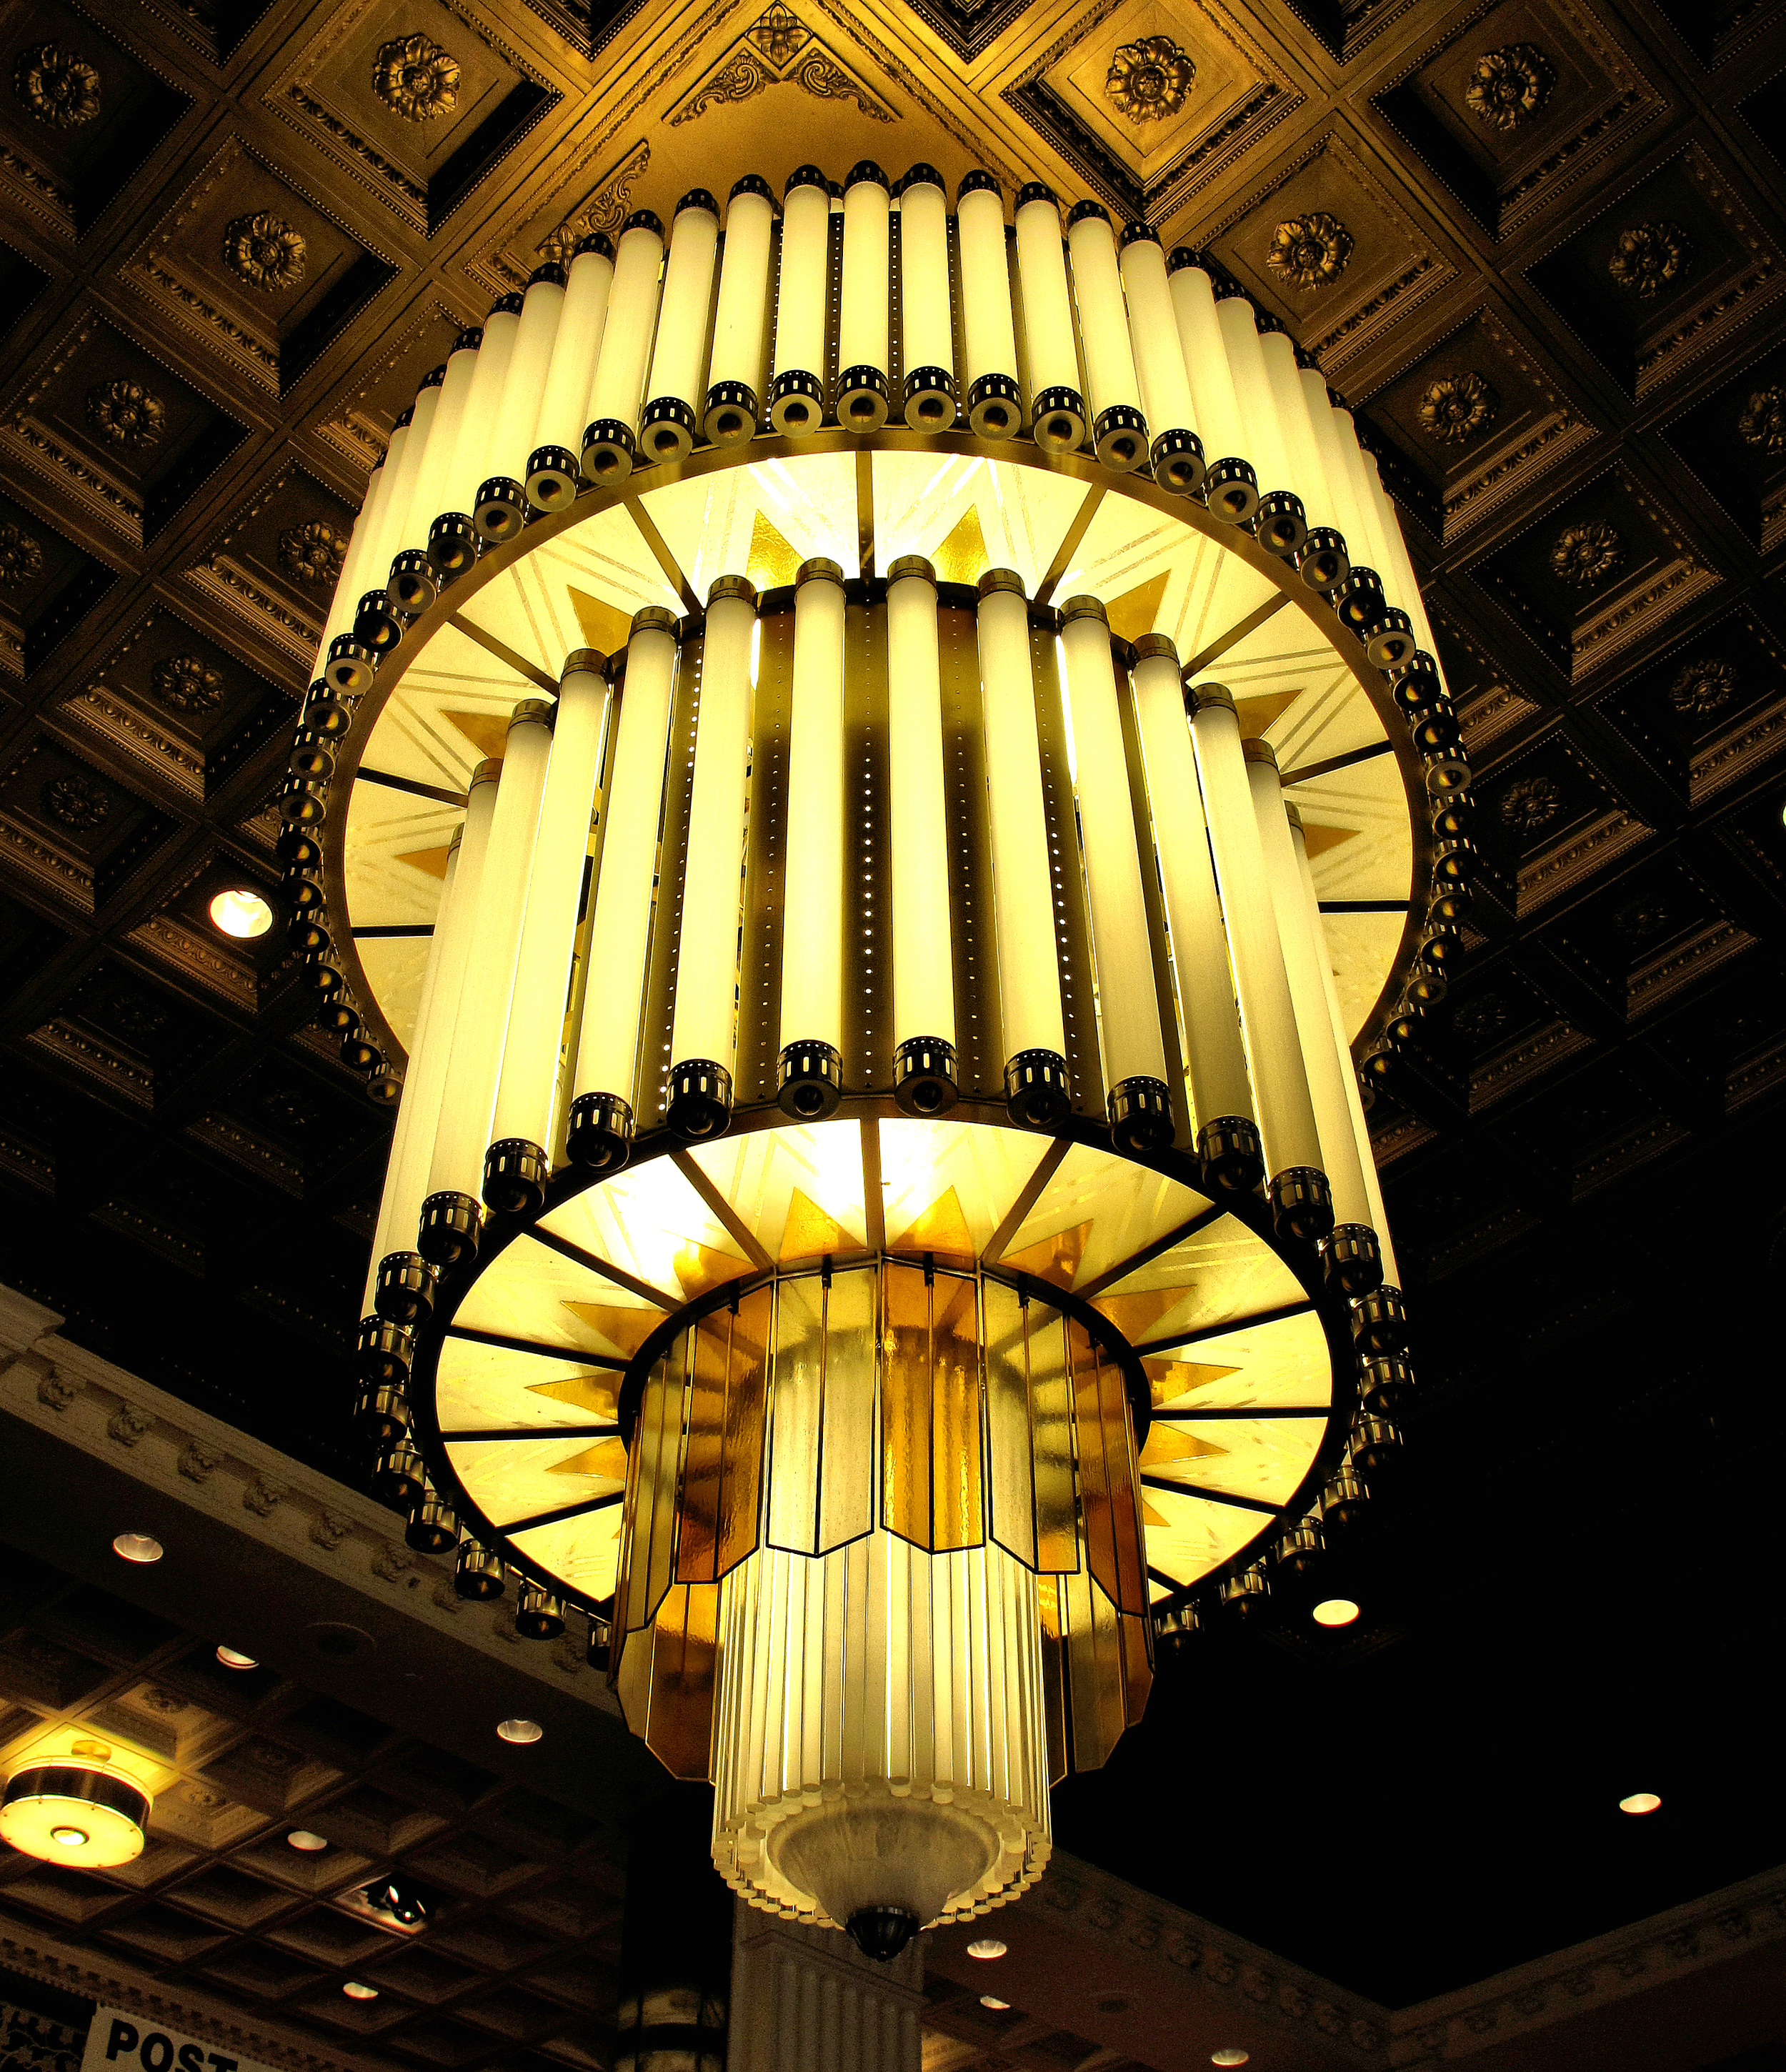 Art Deco Chandelier - New Yorker Hotel, NY